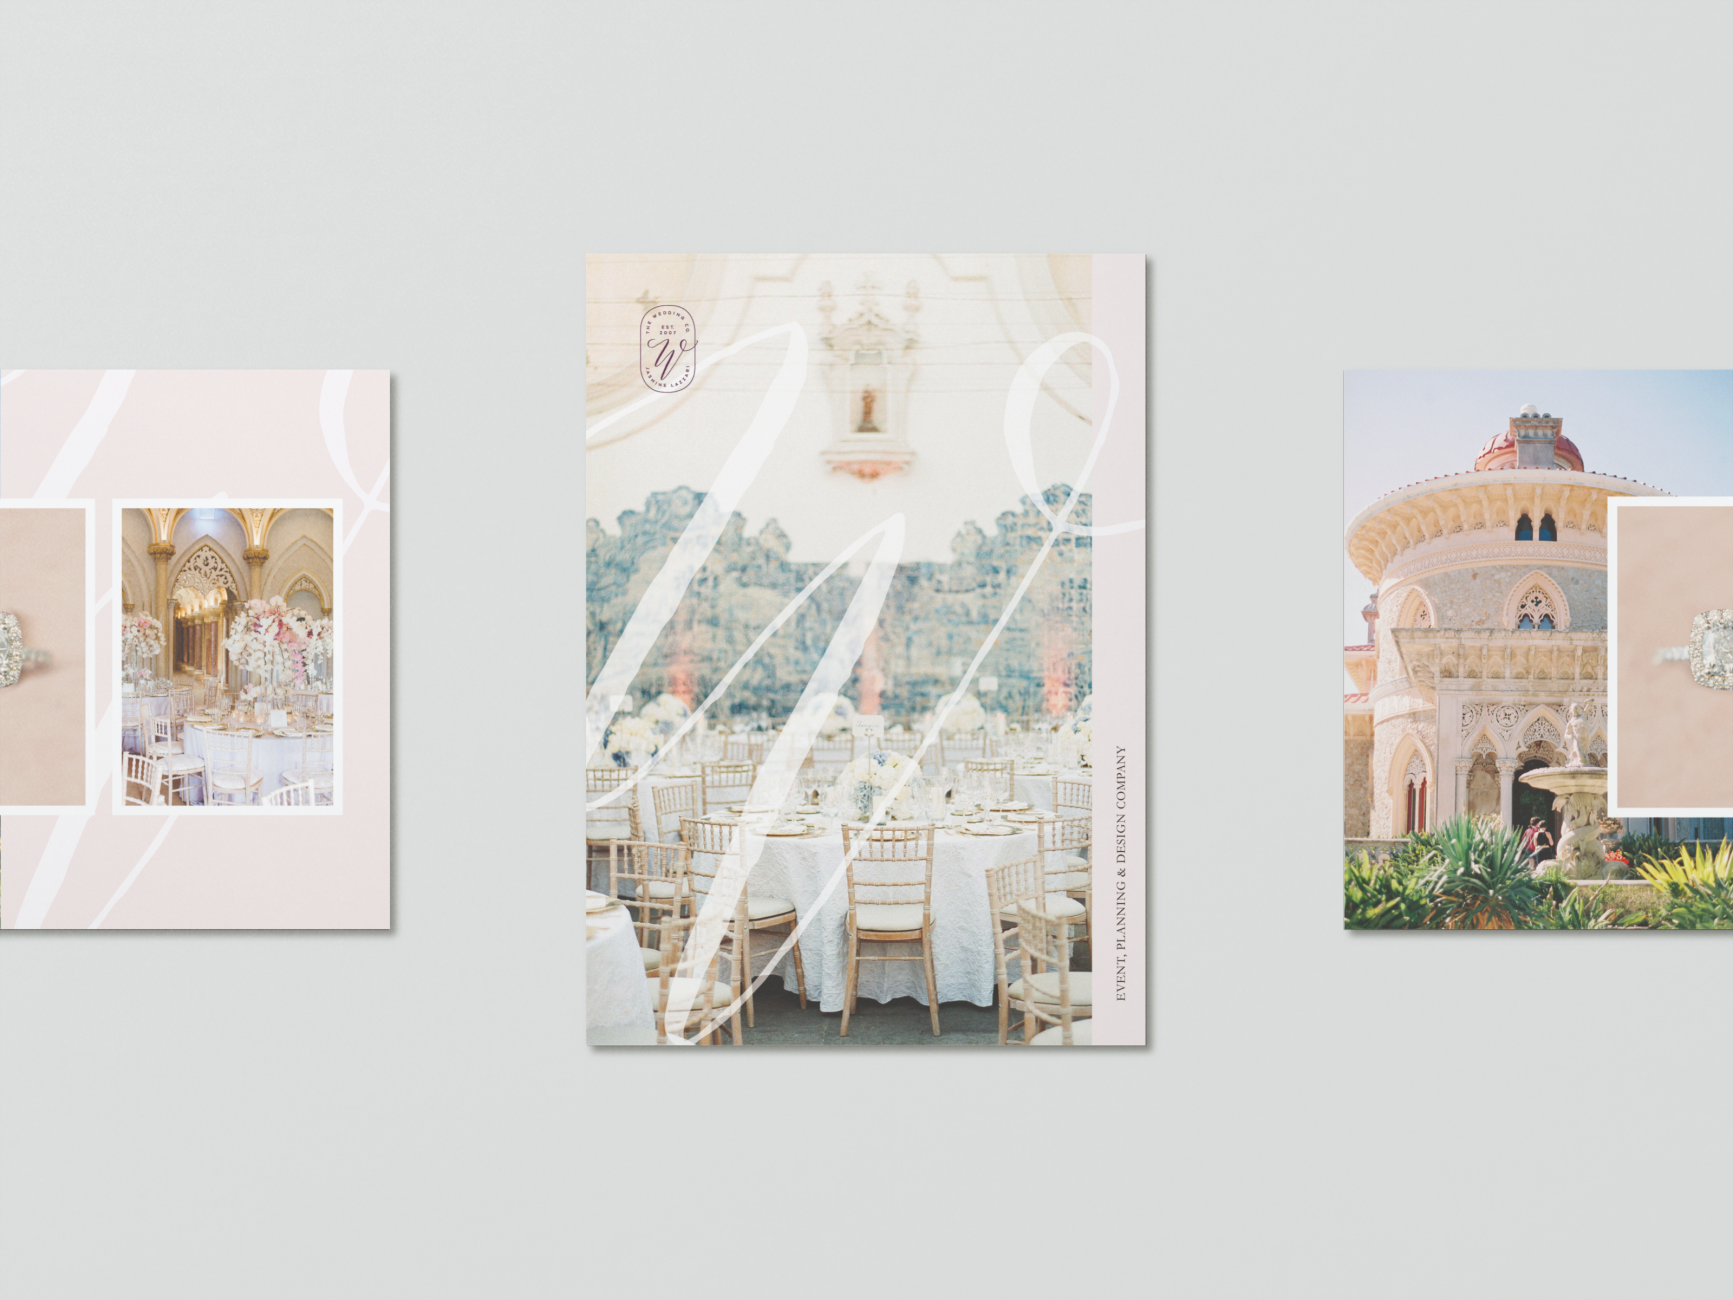 Catalog and brand design for a luxury wedding planner